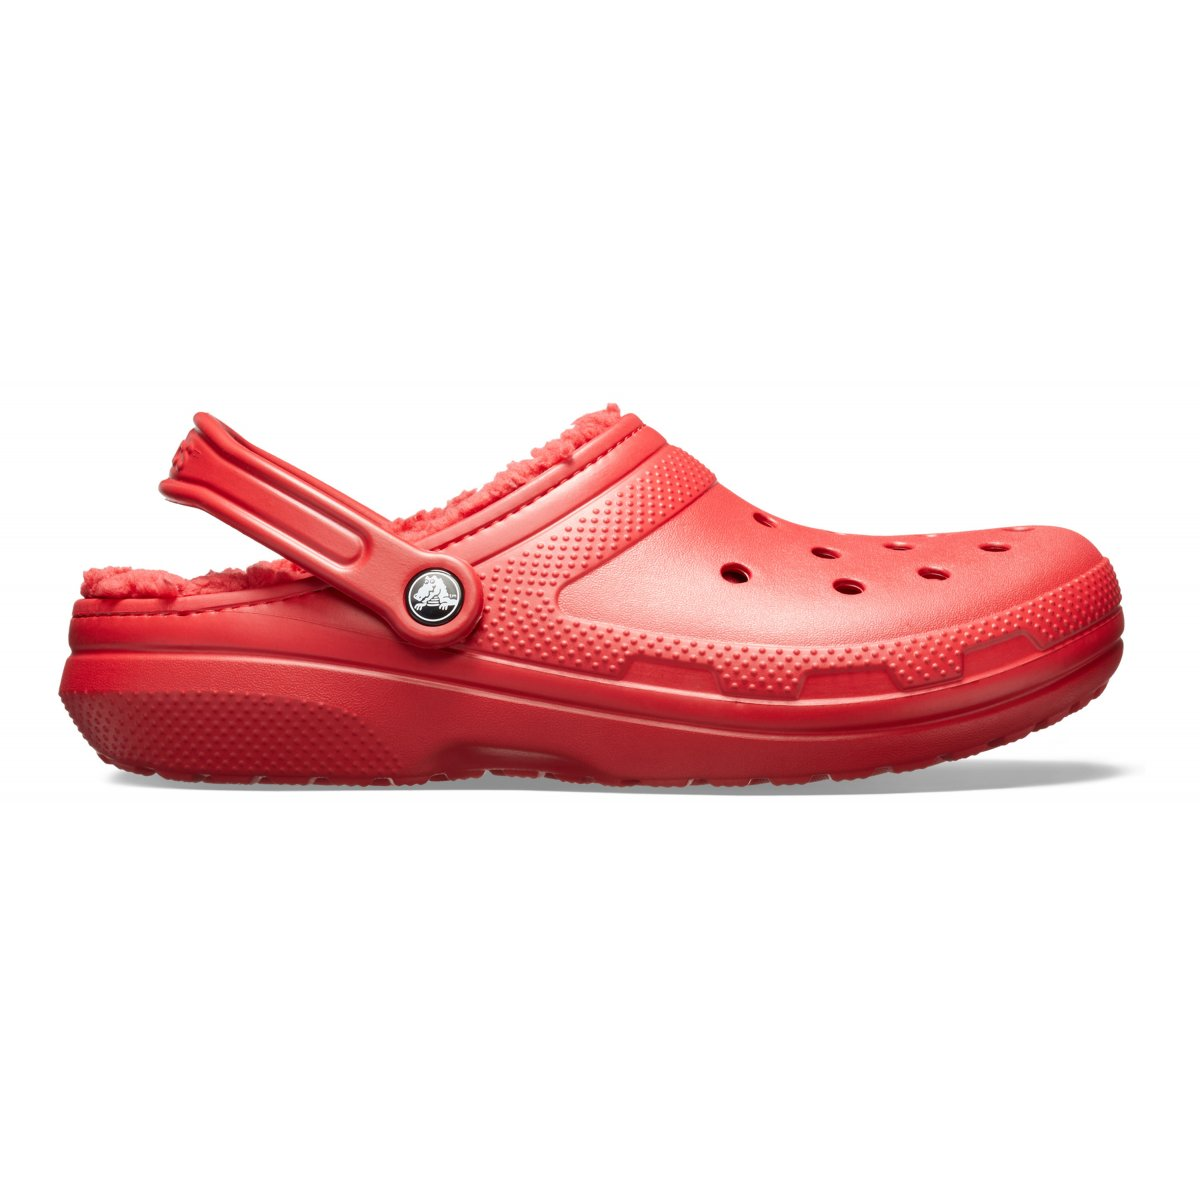 separation shoes 22a01 88a13 Classic Lined Clog - Sabot Footwear Uomo | Crocs Italia